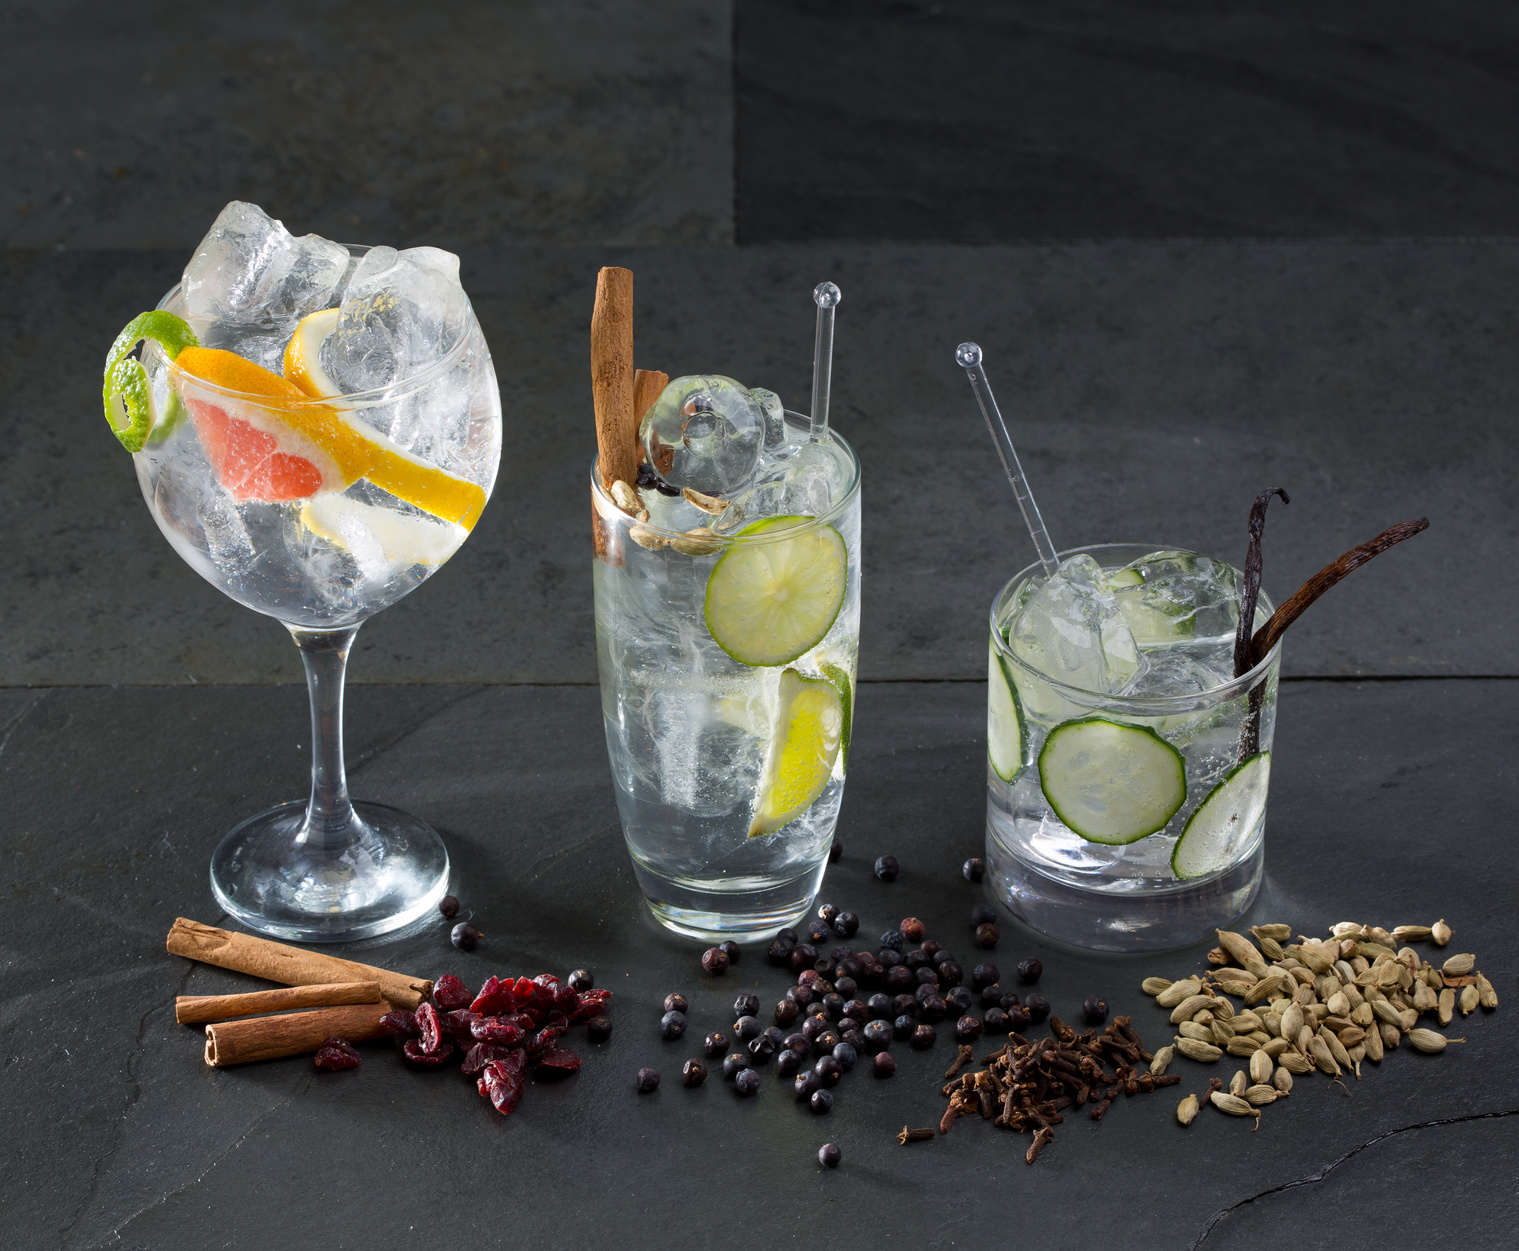 gin tonic welcher gin welches tonic water mit gurke. Black Bedroom Furniture Sets. Home Design Ideas